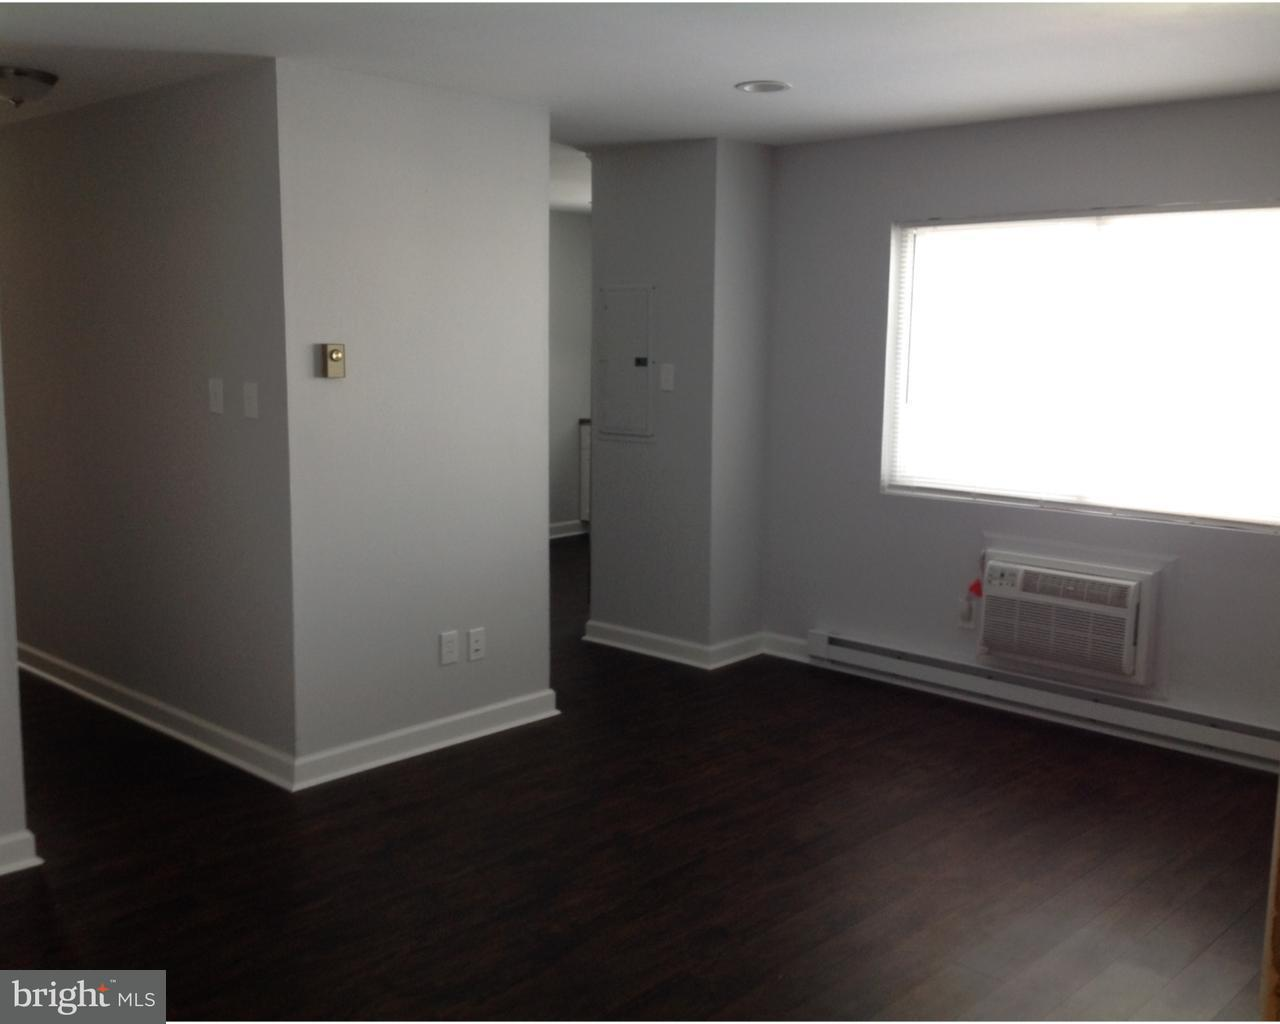 26 PARK AVE #B27, CHALFONT - Listed at $1,250, CHALFONT